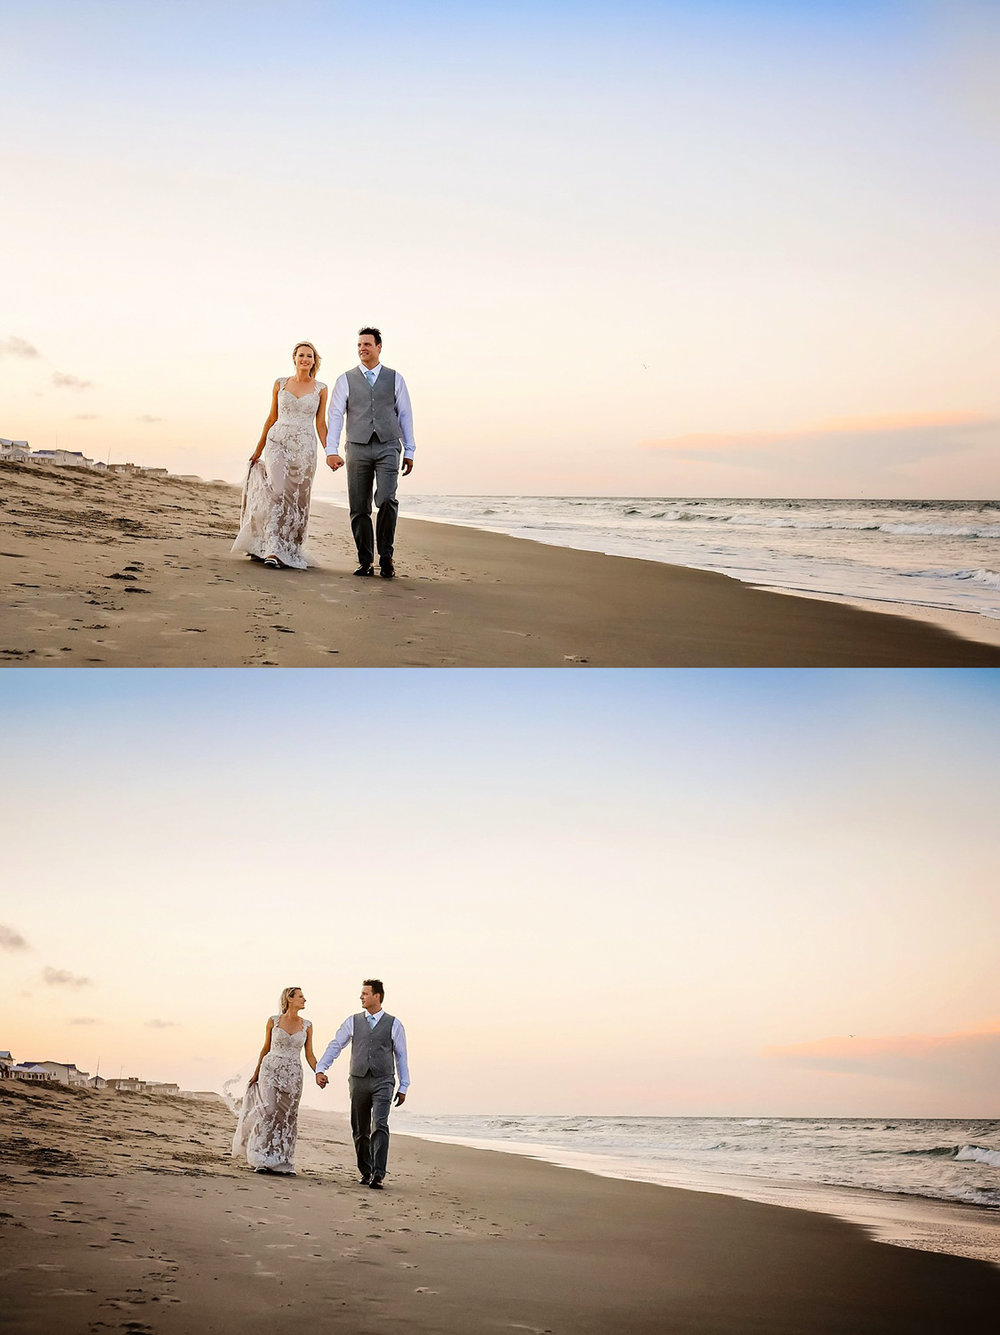 bride-and-groom-sunset-stroll-sandbridge-beach-wedding-va-beach-photographer-melissa-bliss-photography.jpg